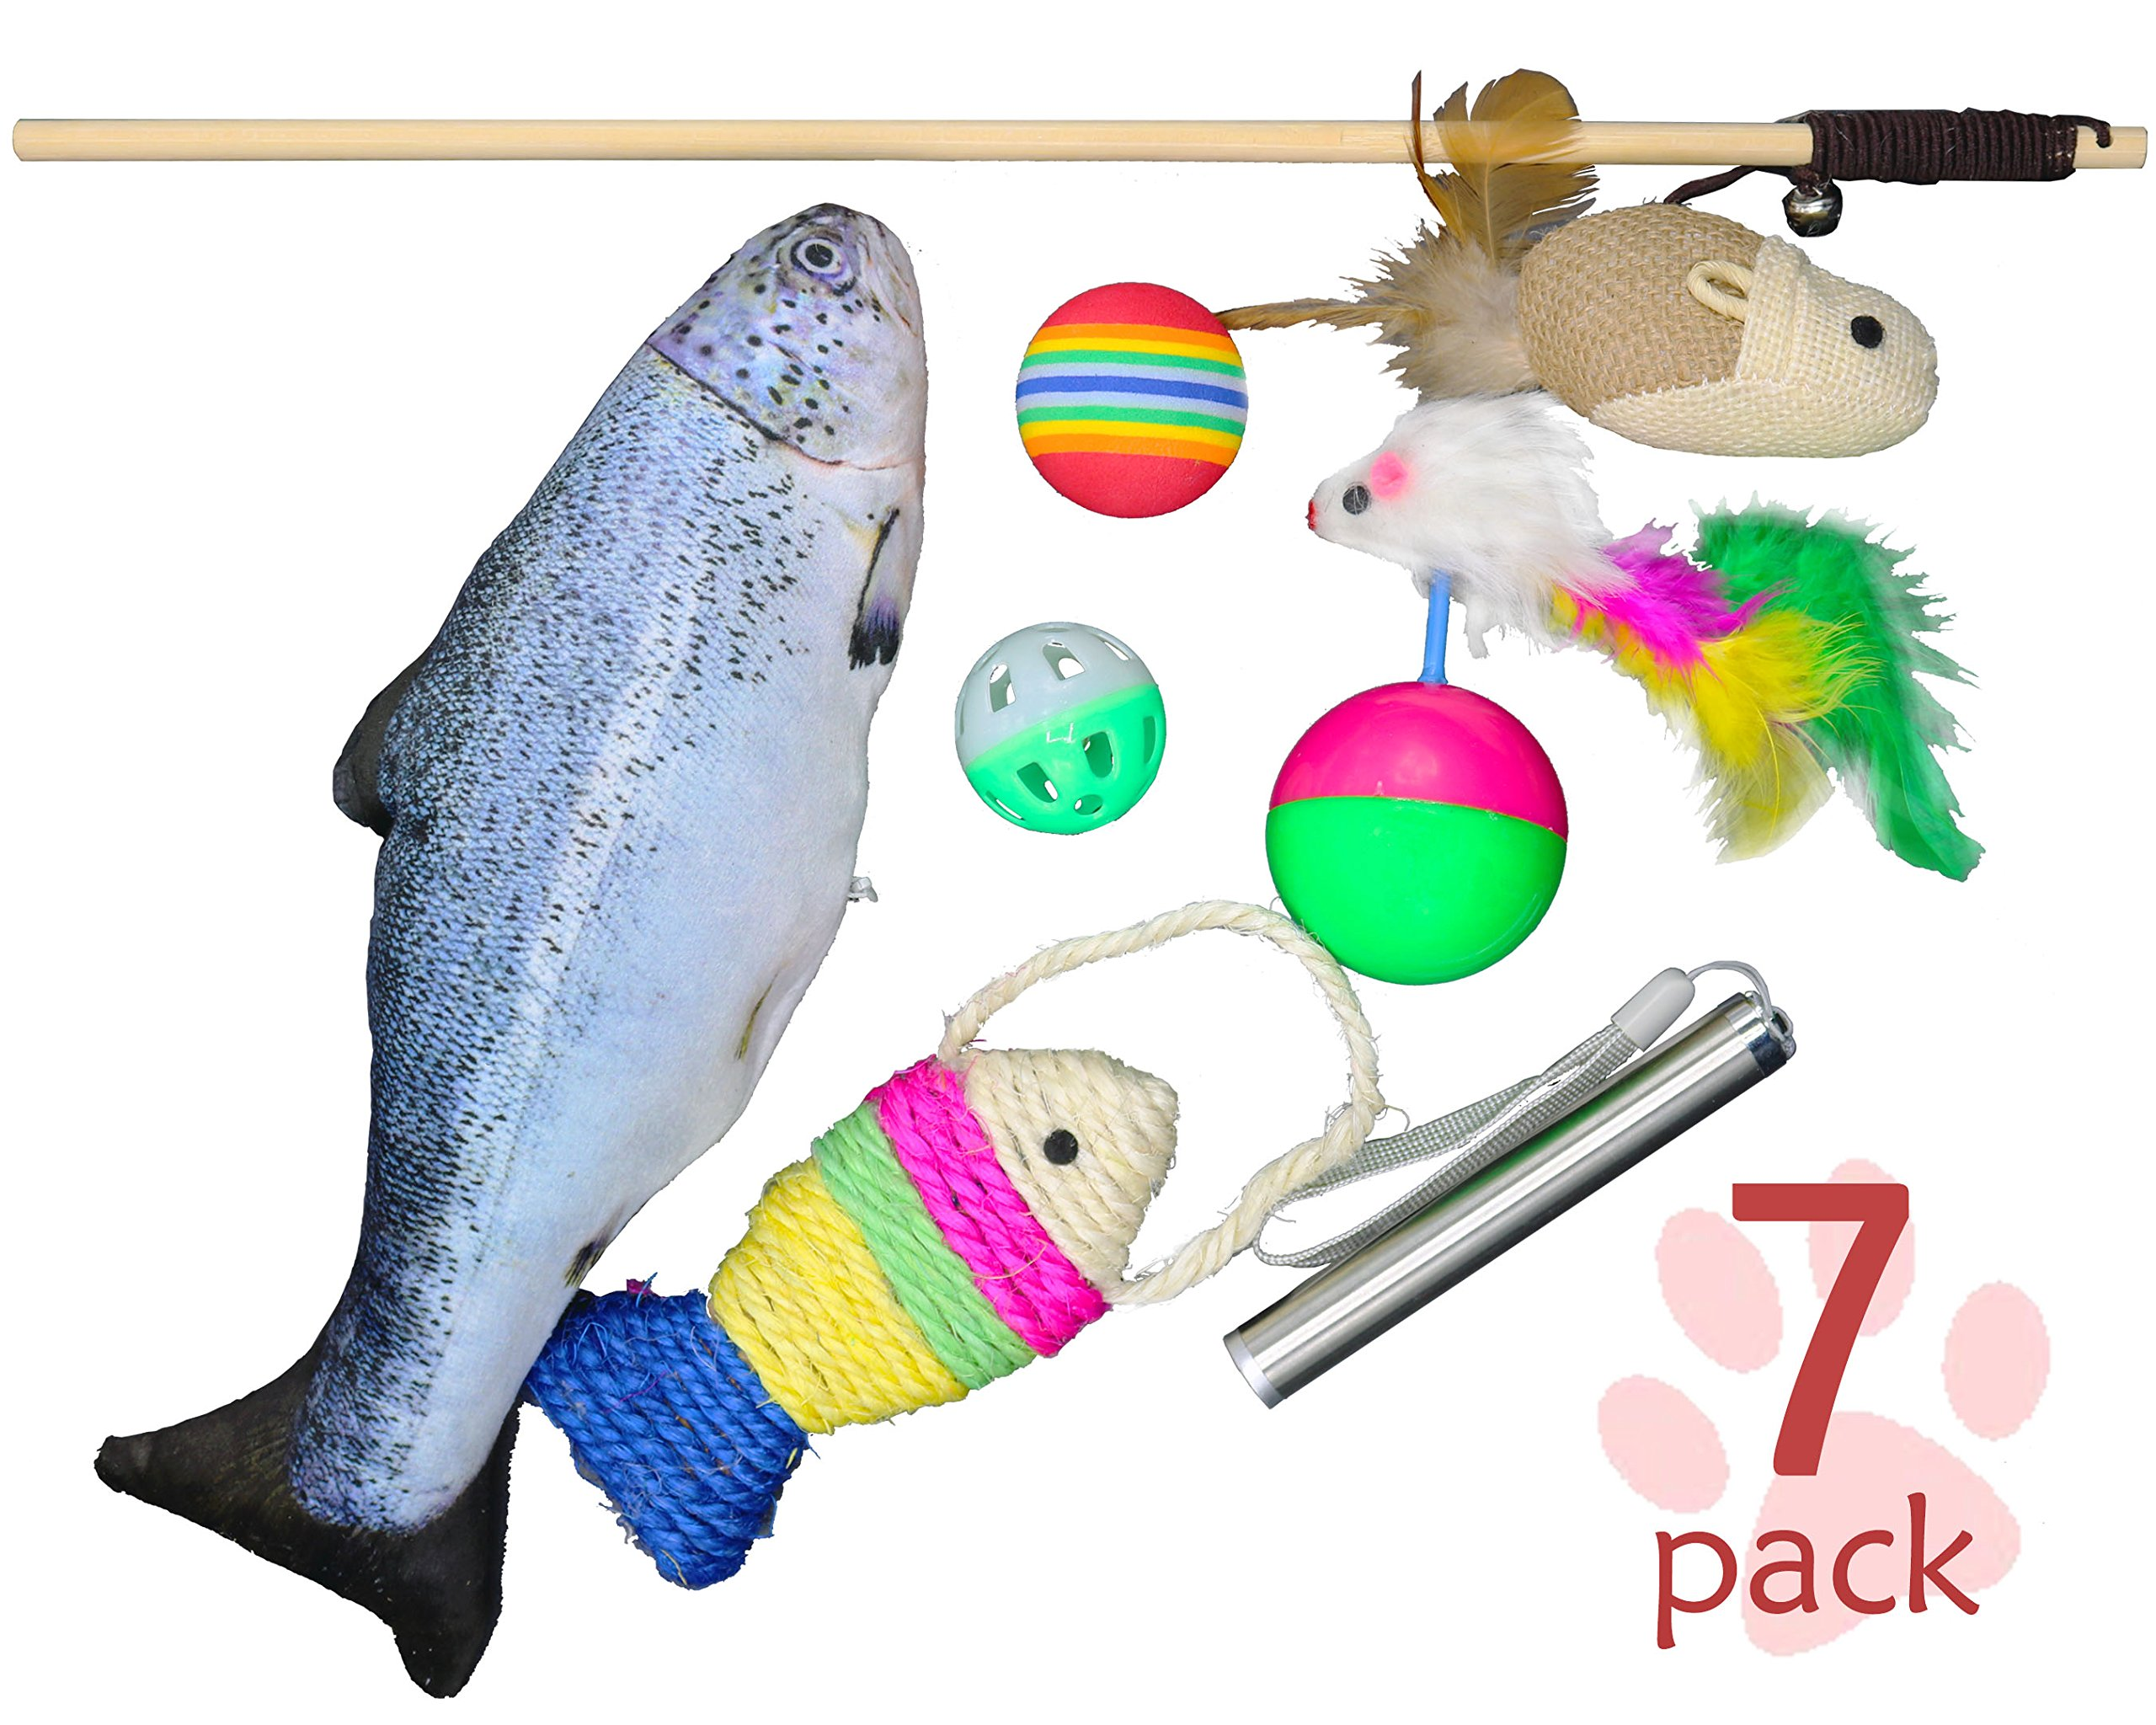 Lovely Cat Toys Set of 7. Variety Interactive Kitten Toys with Cat Teaser Wand, Catnip Fish, Sisal Rope Weave Fish, Feather Mouse Interactive Teaser Ball, Colorful Soft Foam Rainbow Ball, Jingle Balls